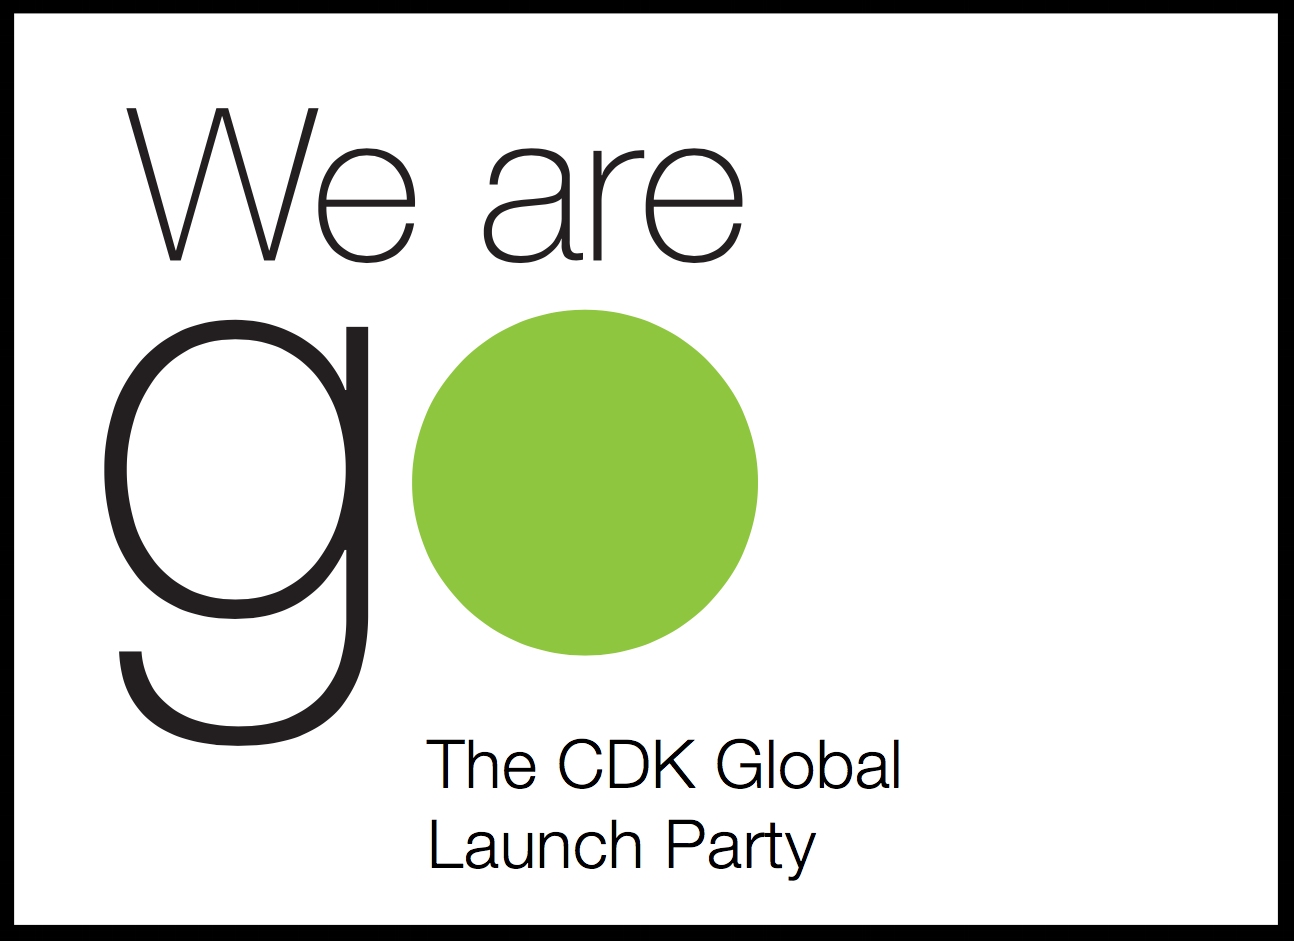 cdk global  summer 14 > winter 14 concepting and writing B2B, B2C, and internal messaging for brand launch